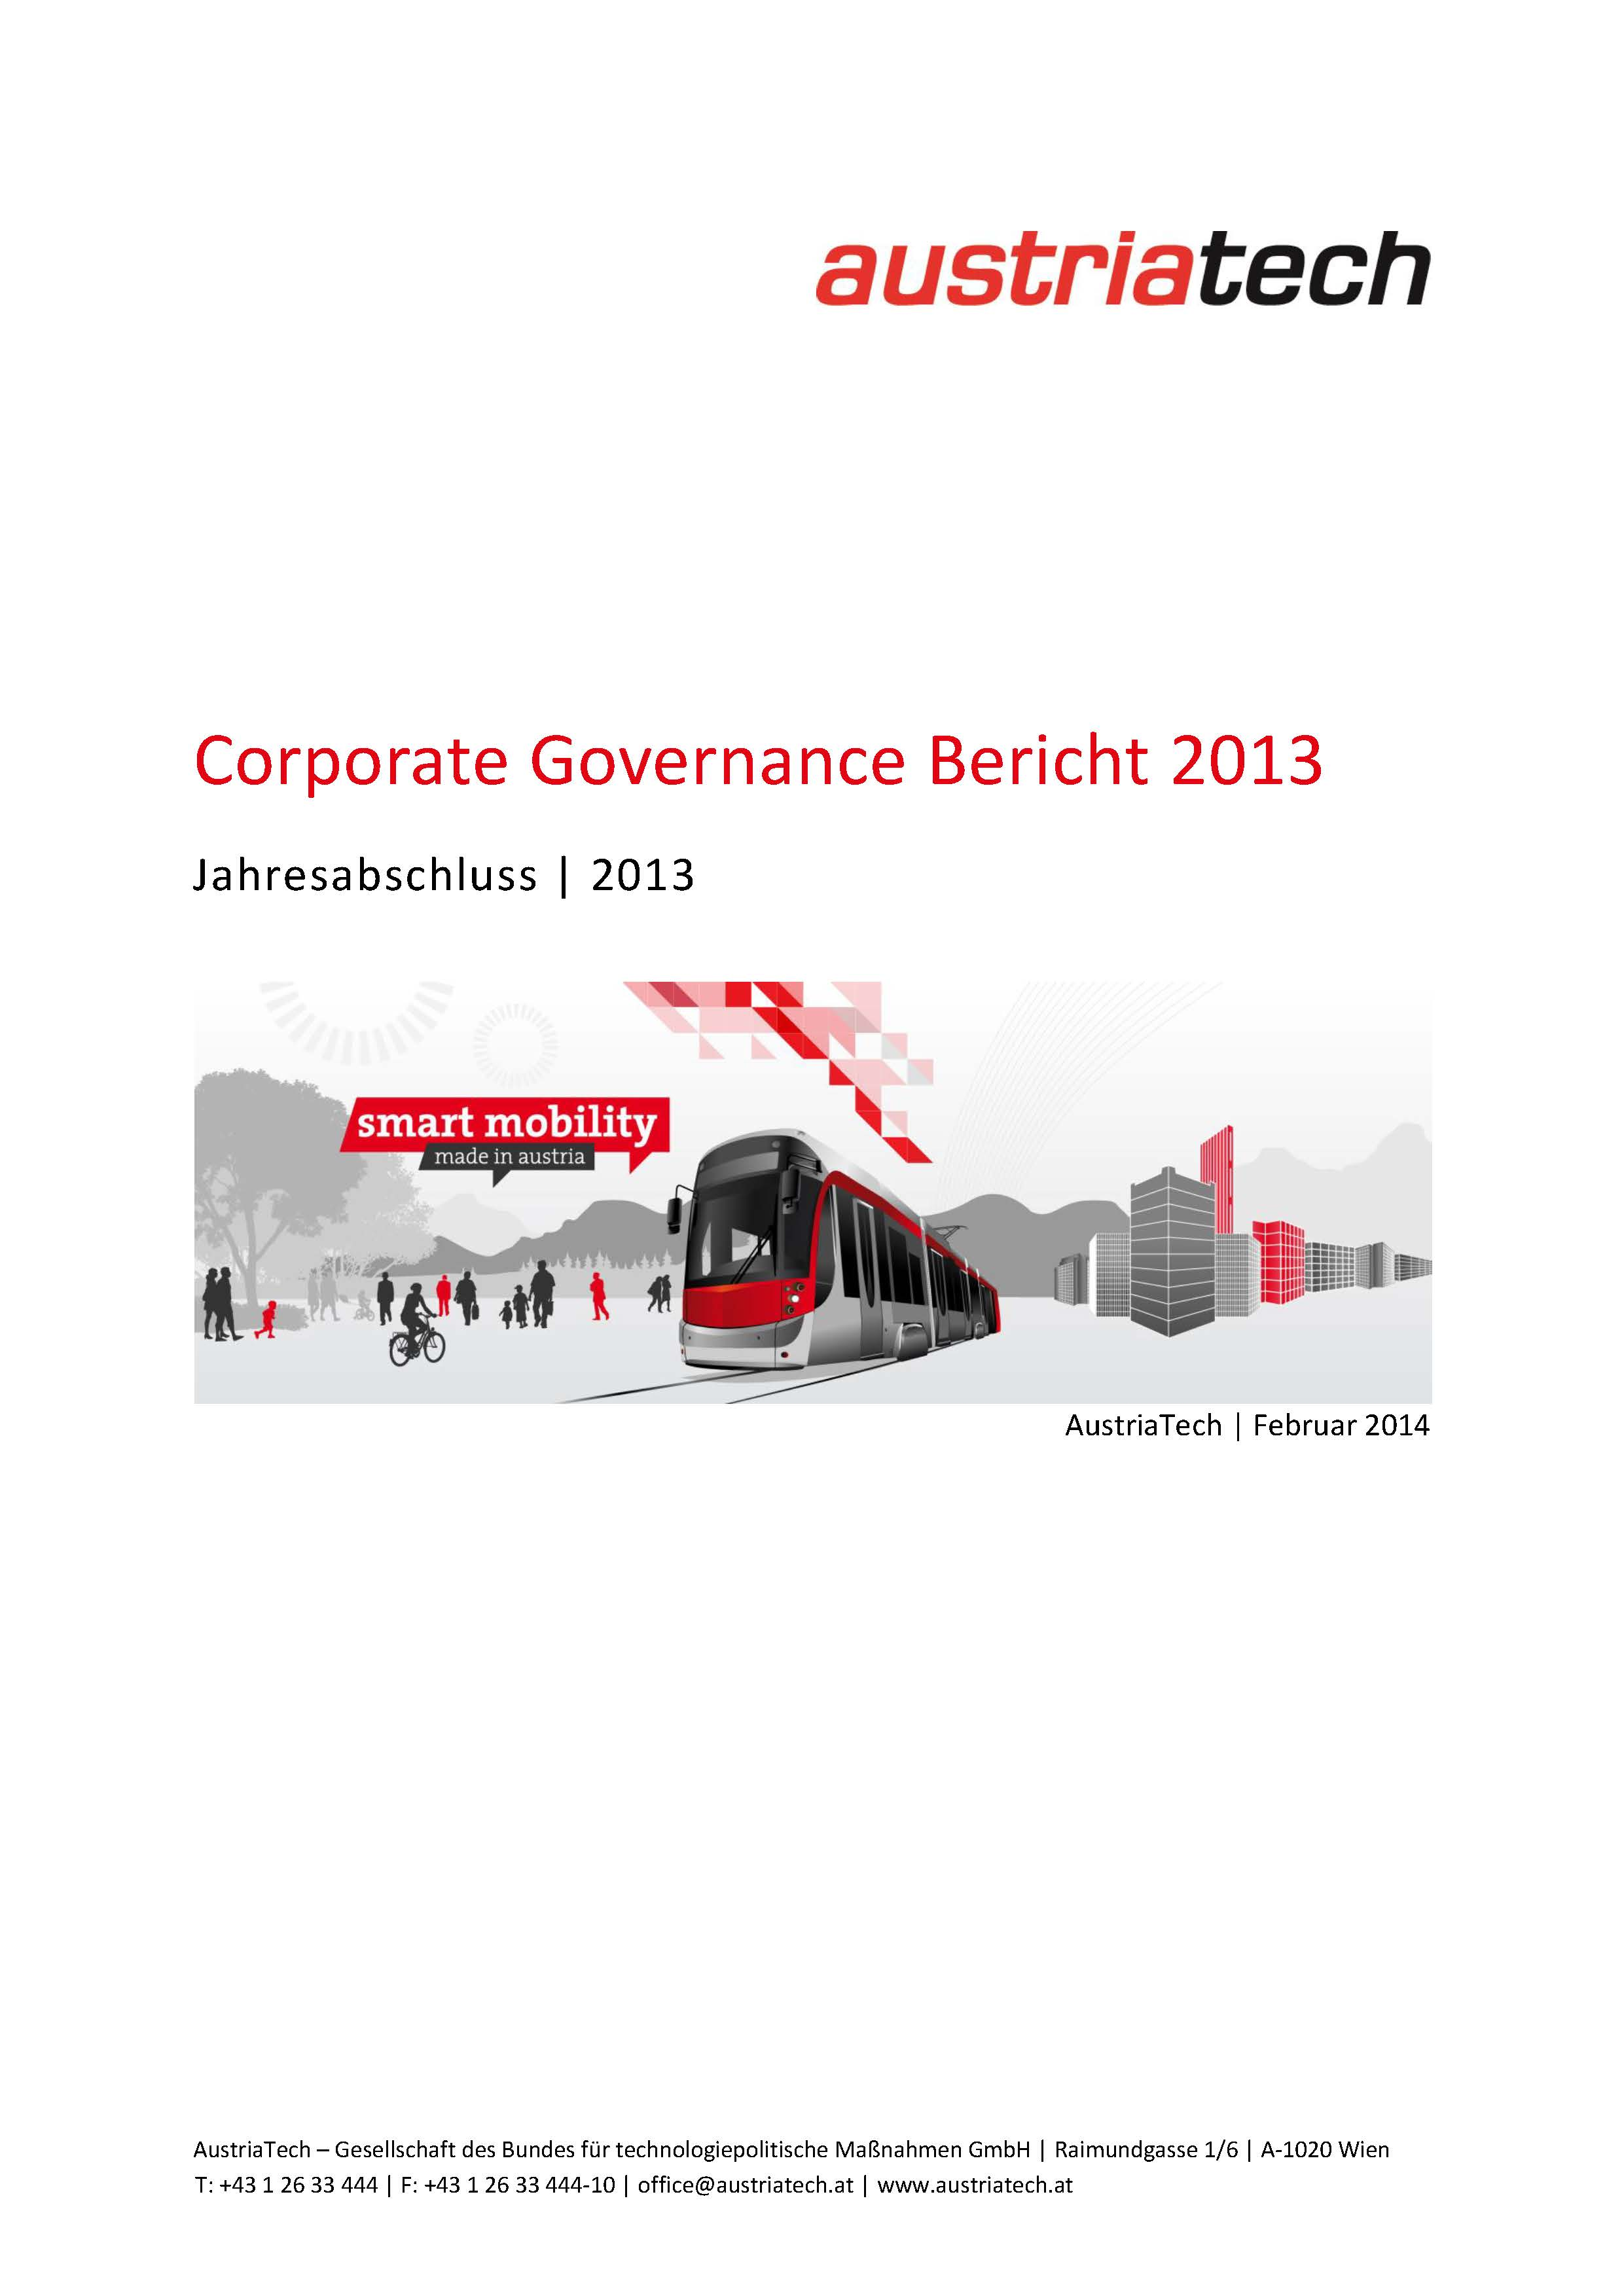 AustriaTech Corporate Governance 2013